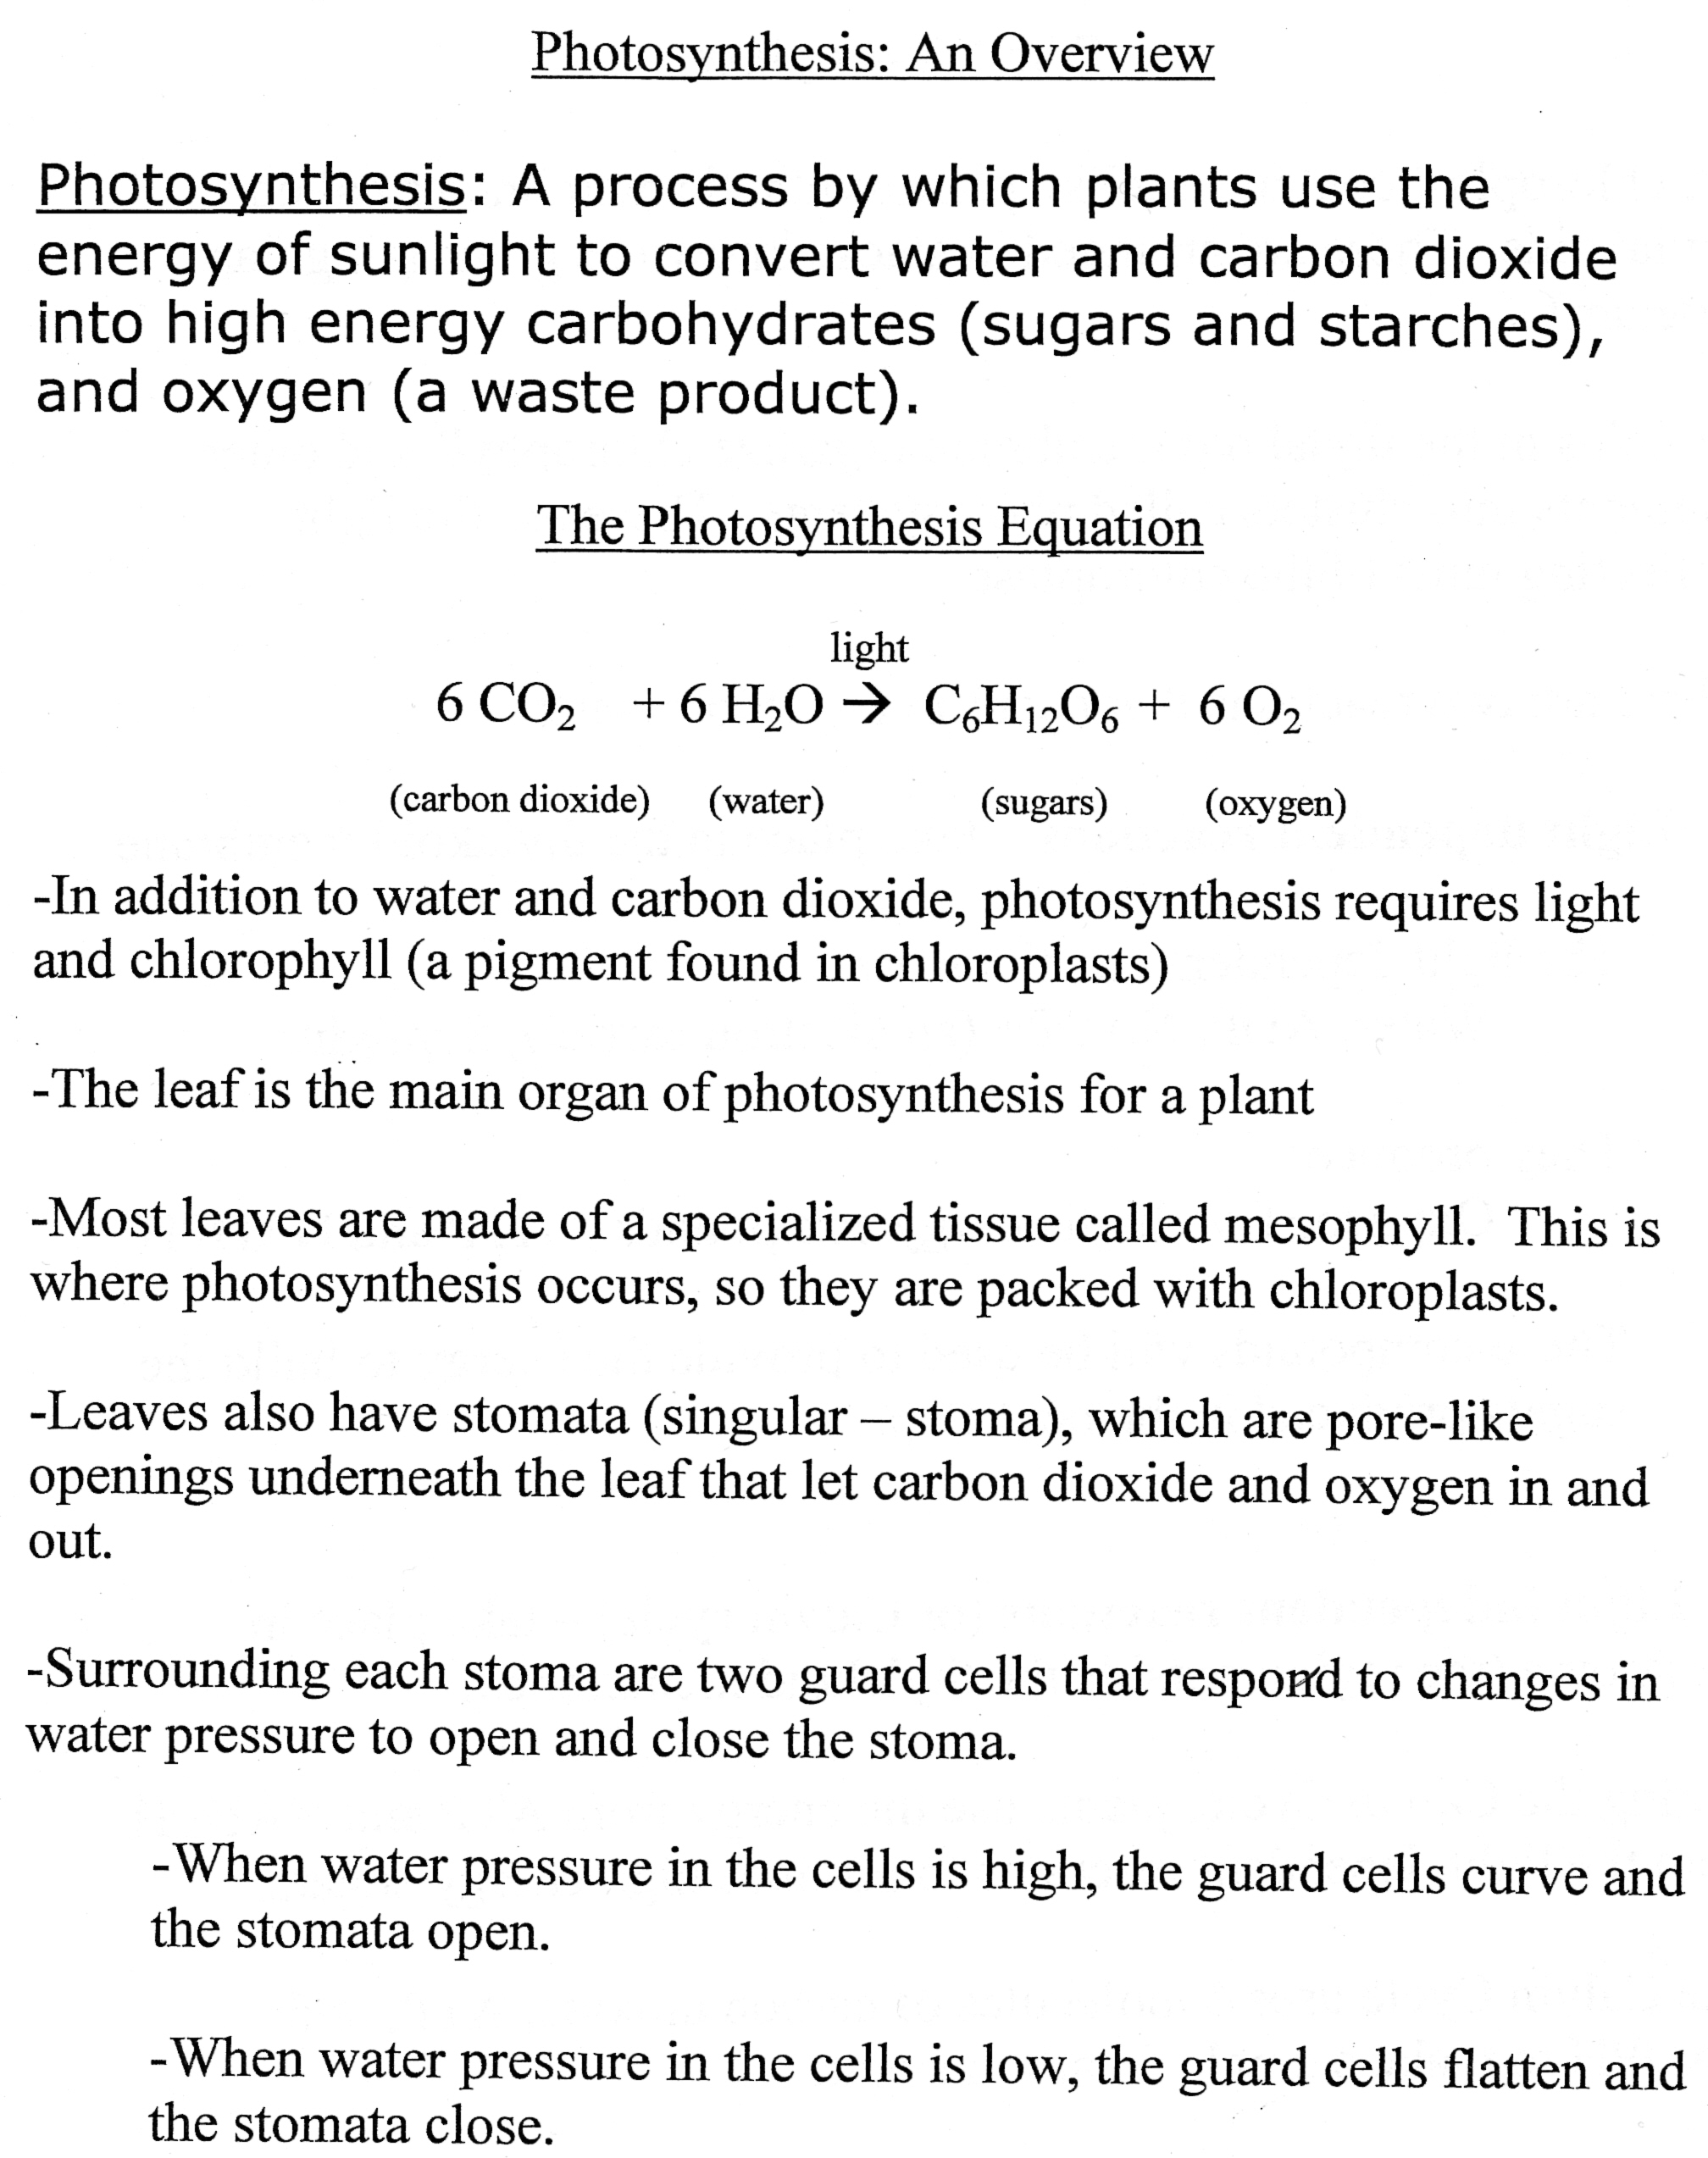 Photosynthesis Worksheet Answers Key